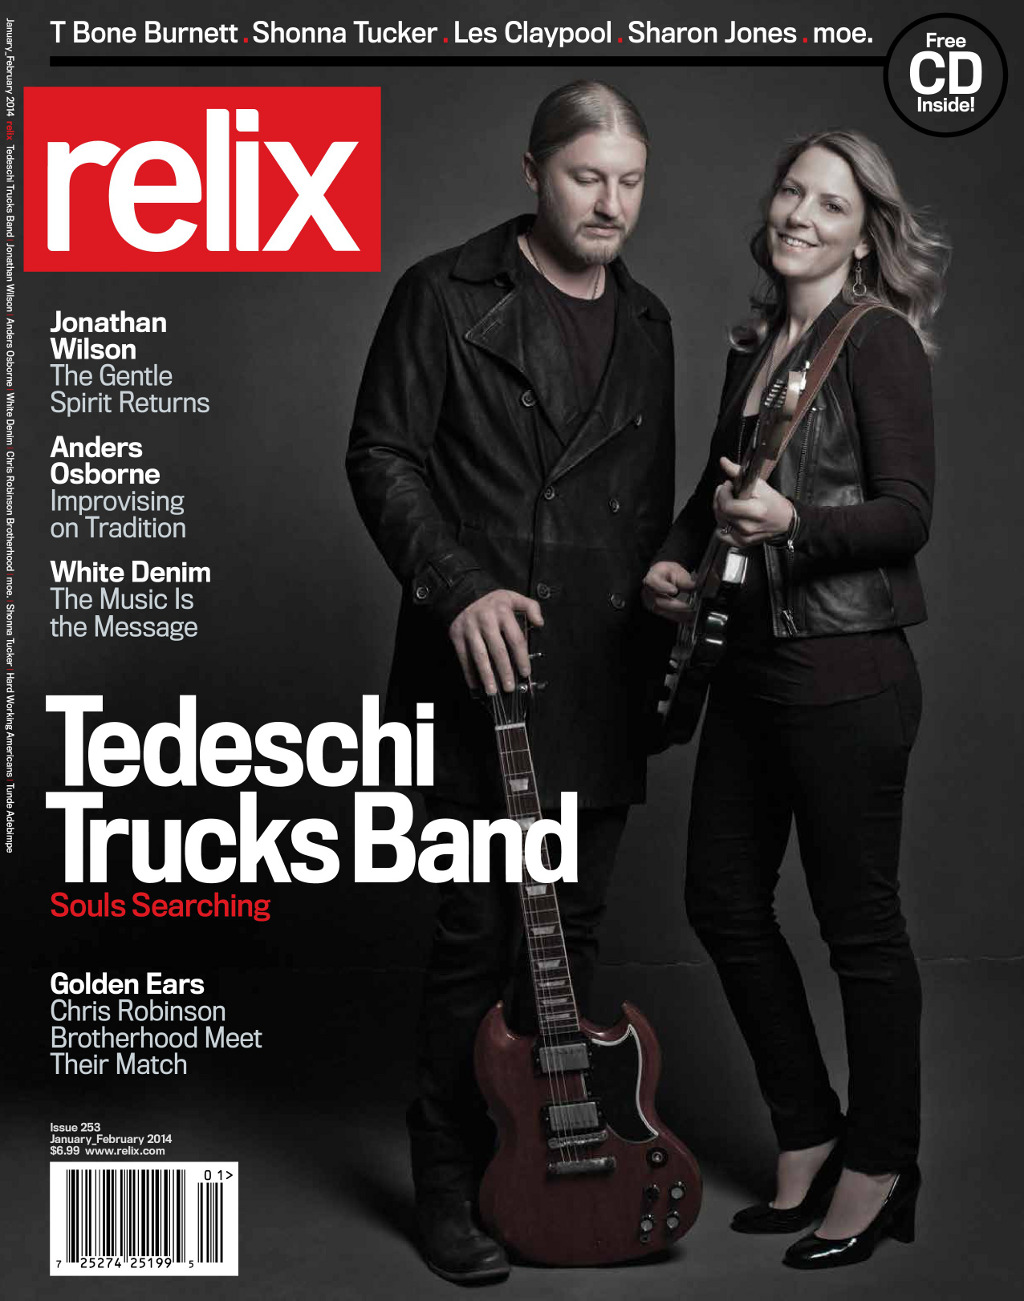 TTB on Relix Cover